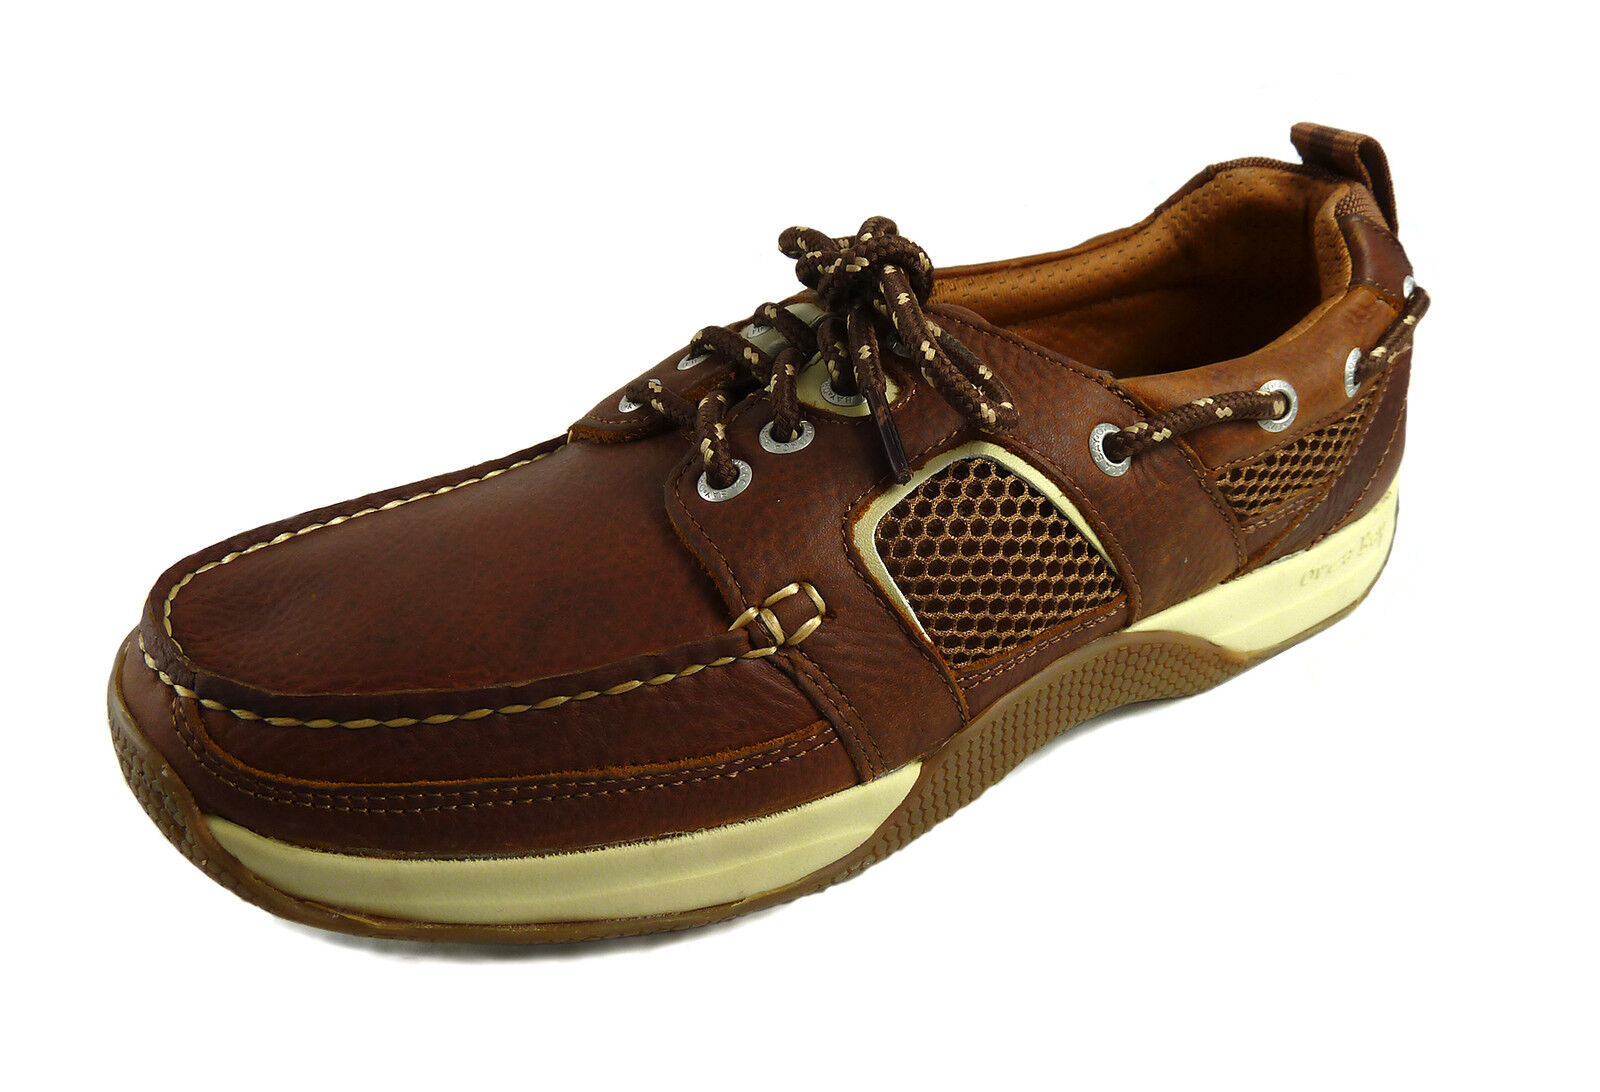 ORCA SPORT Bay WAVE UOMO HYBRID Barca / SPORT ORCA SHOES-hand-stitched calzature in cuoio 01be1b